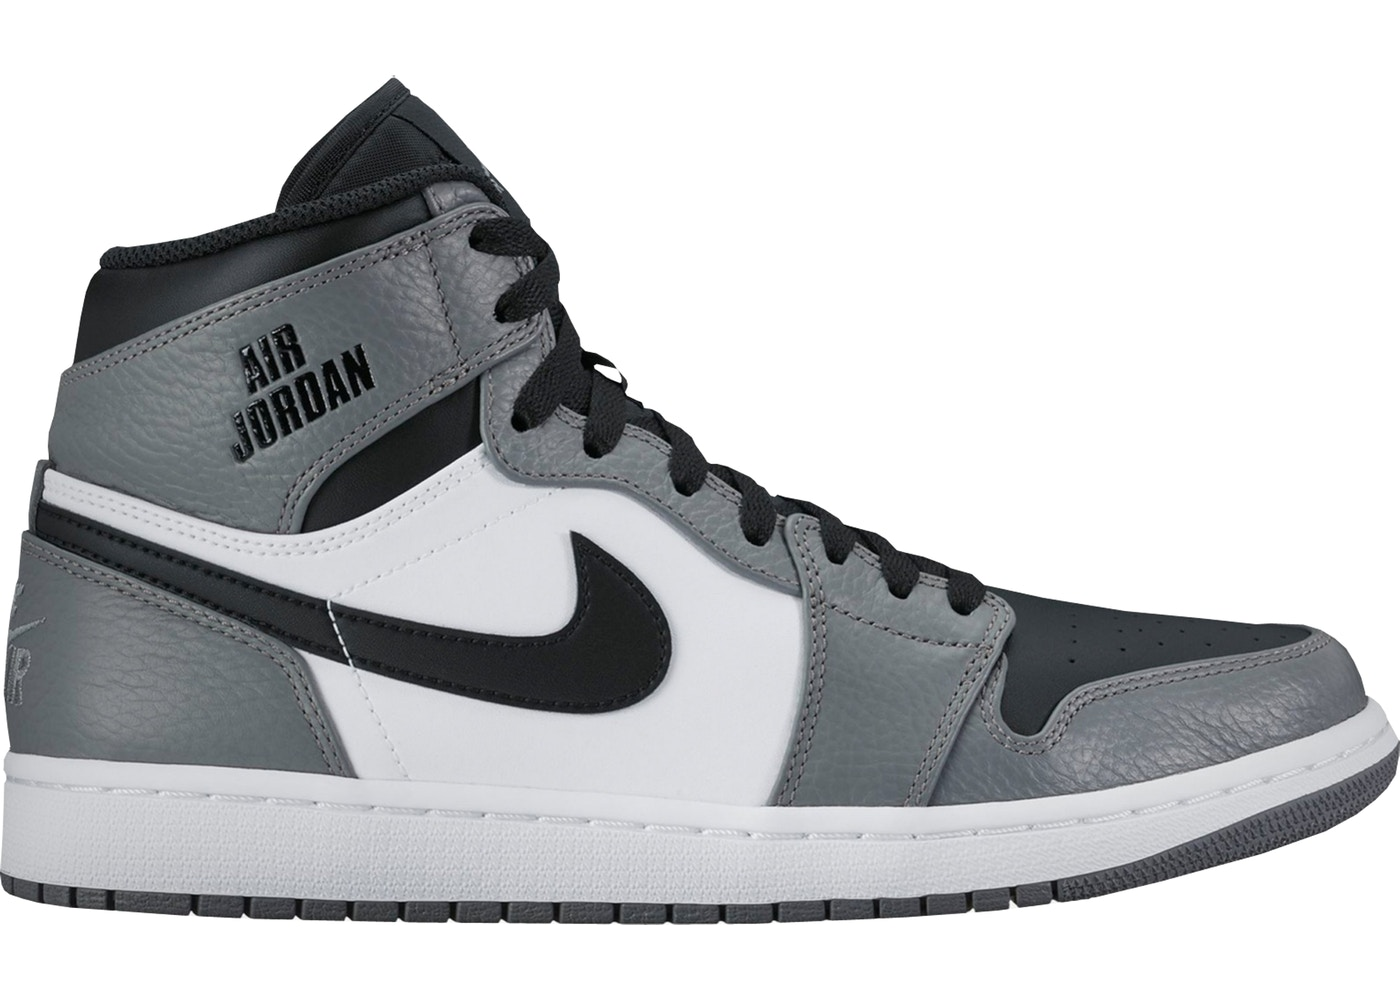 37aa241f1a4 Jordan 1 Retro Rare Air Cool Grey - 332550-024